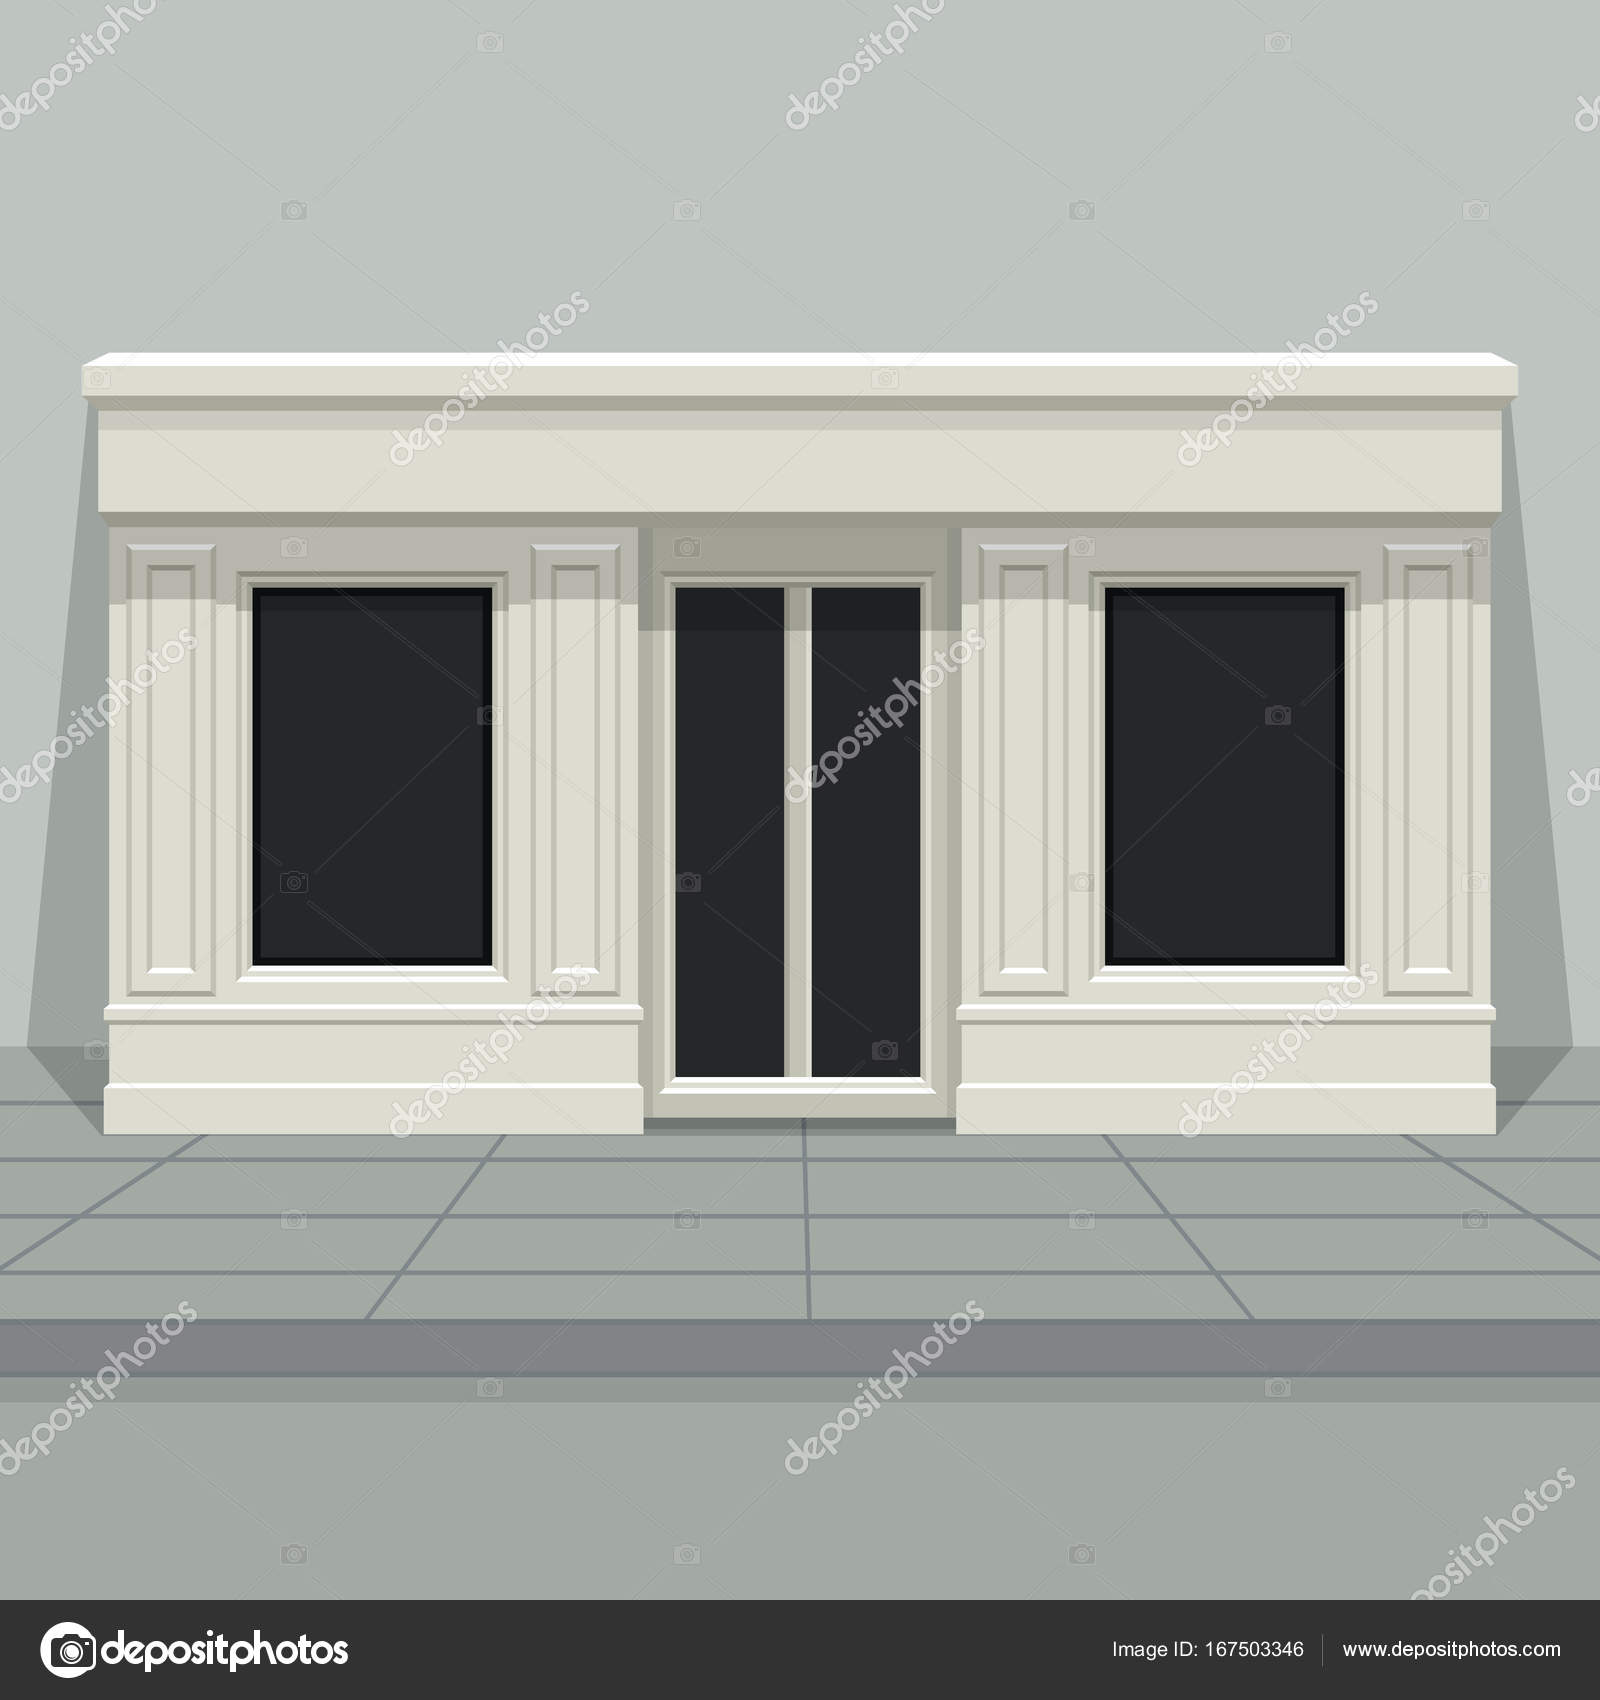 Facade shop store boutique with glass windows and doors for Window design template